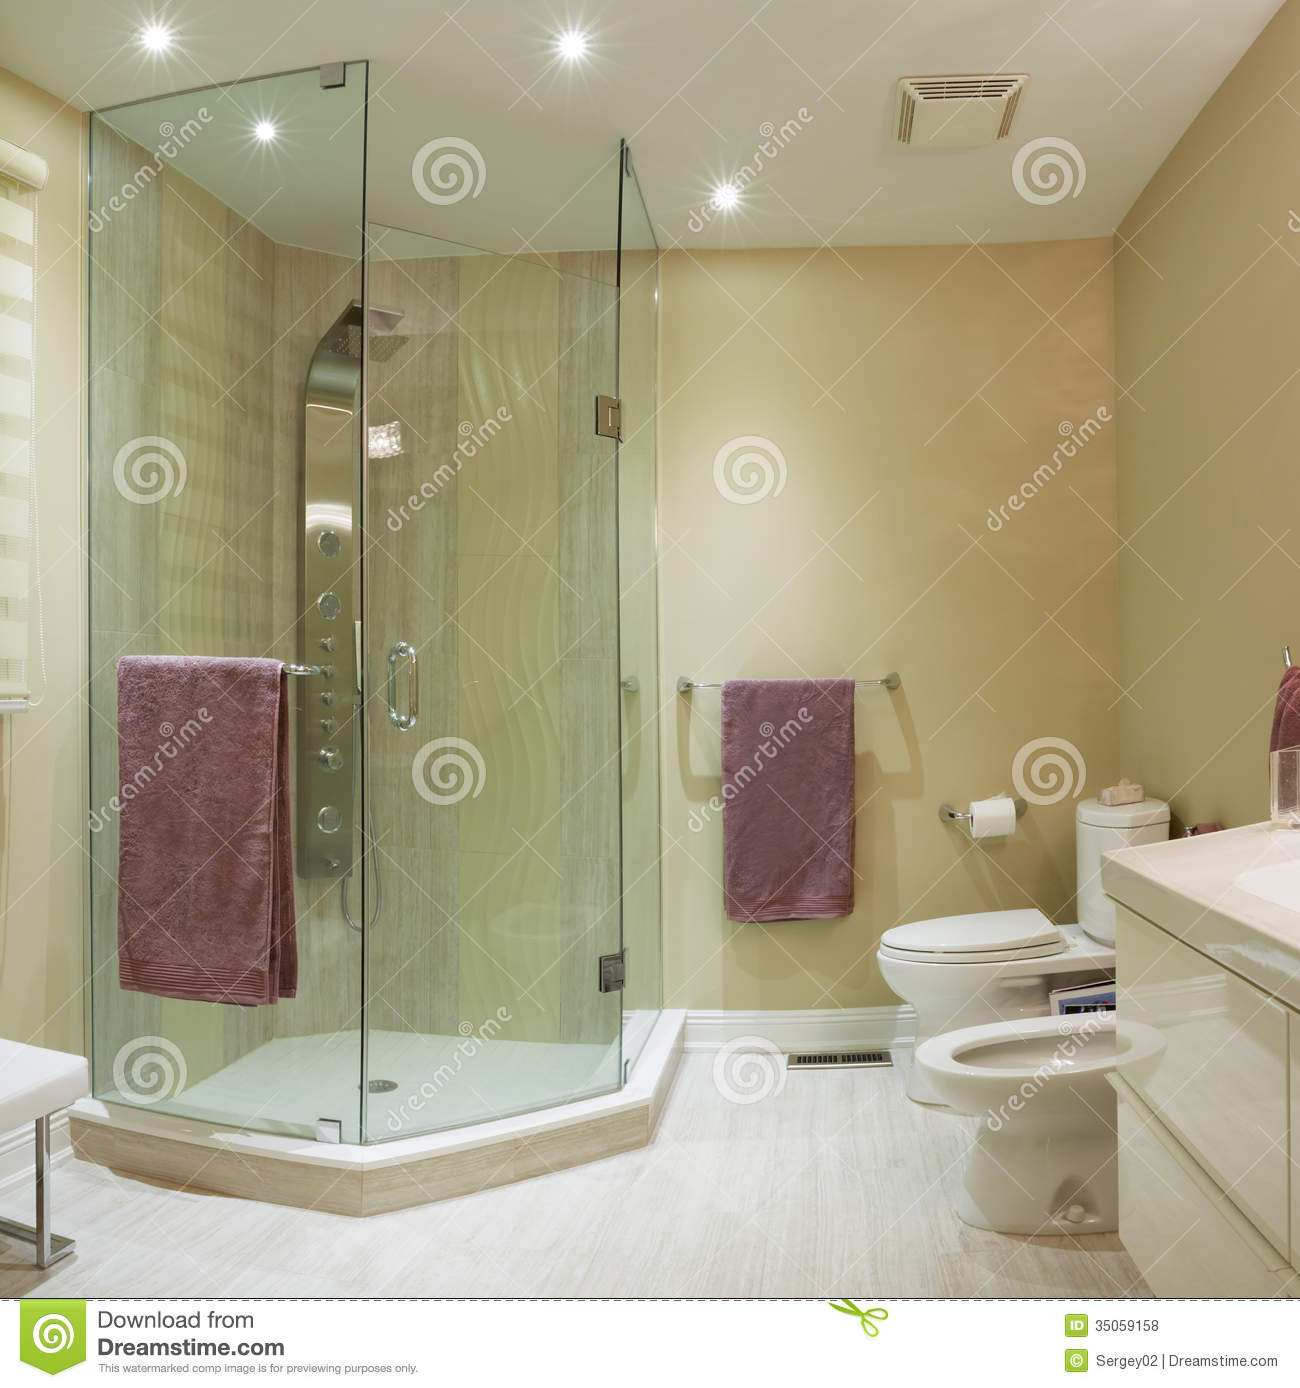 Interior design royalty free stock photos image 35059158 for Create a bathroom design online